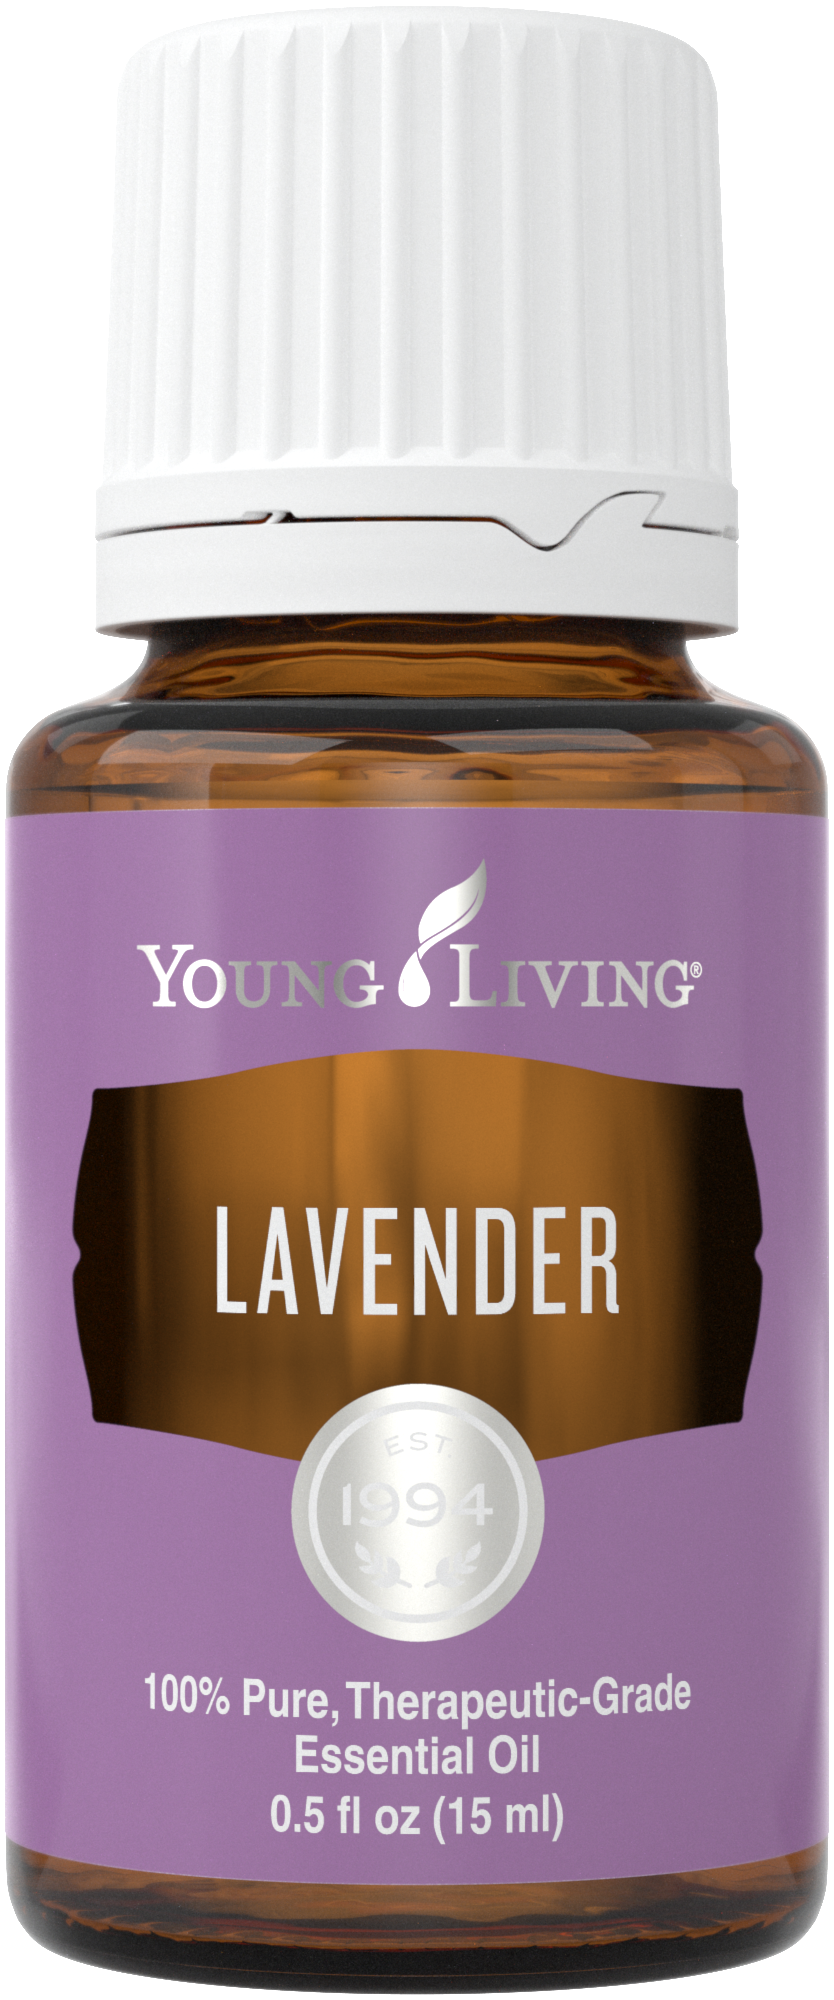 lavender_15ml_silo_us_2016_24419030552_o.png